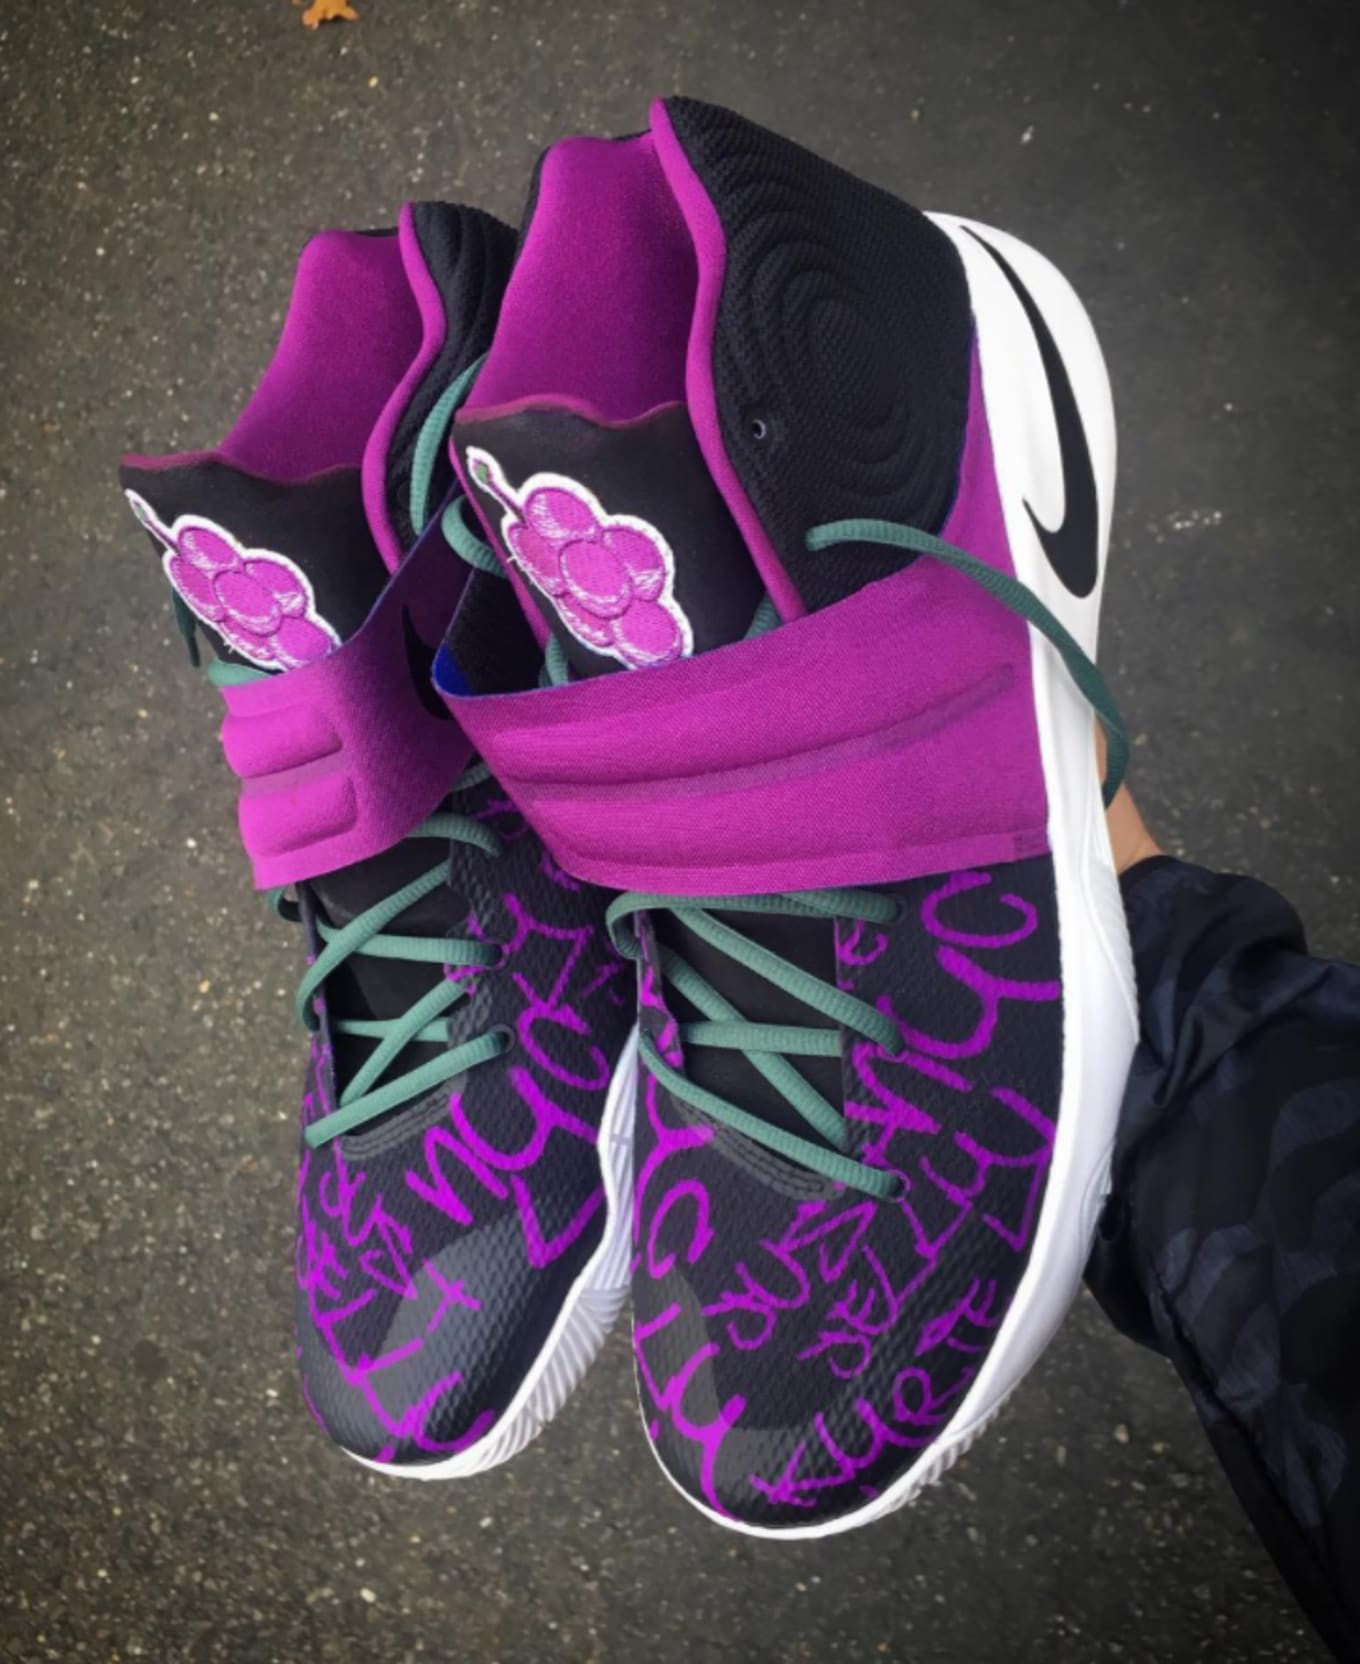 3dc379e42e2 Kyrie Irving Gets Grape Jelly-Flavored Sneakers